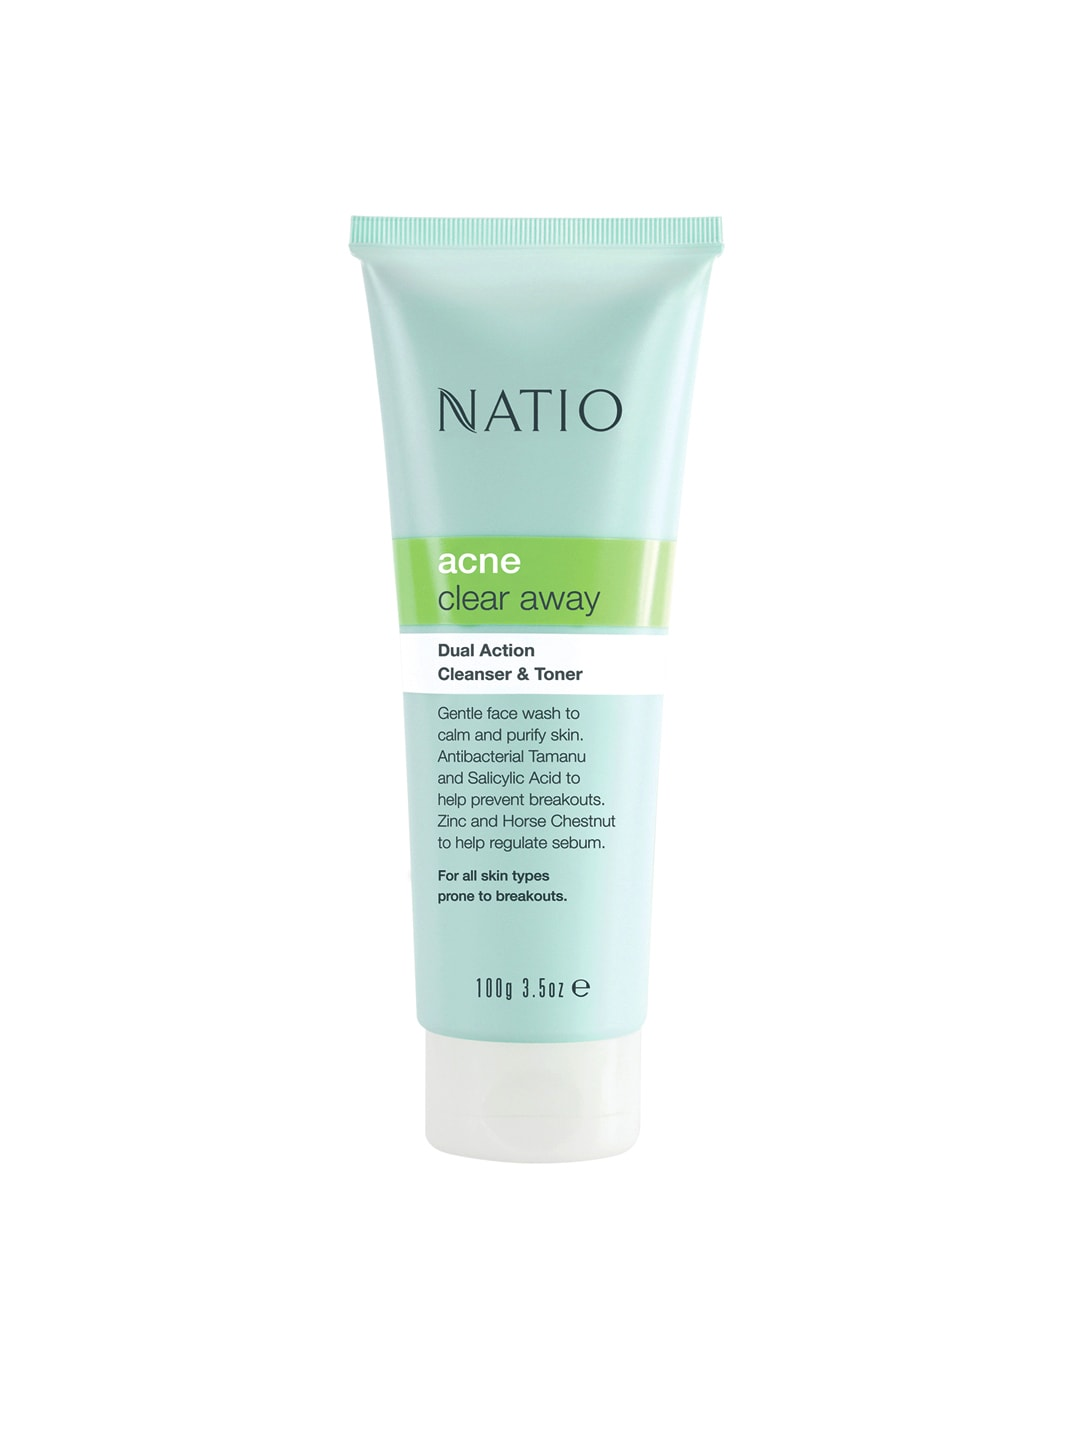 Natio Acne Clear Away Dual Action Cleanser & Toner Face Wash